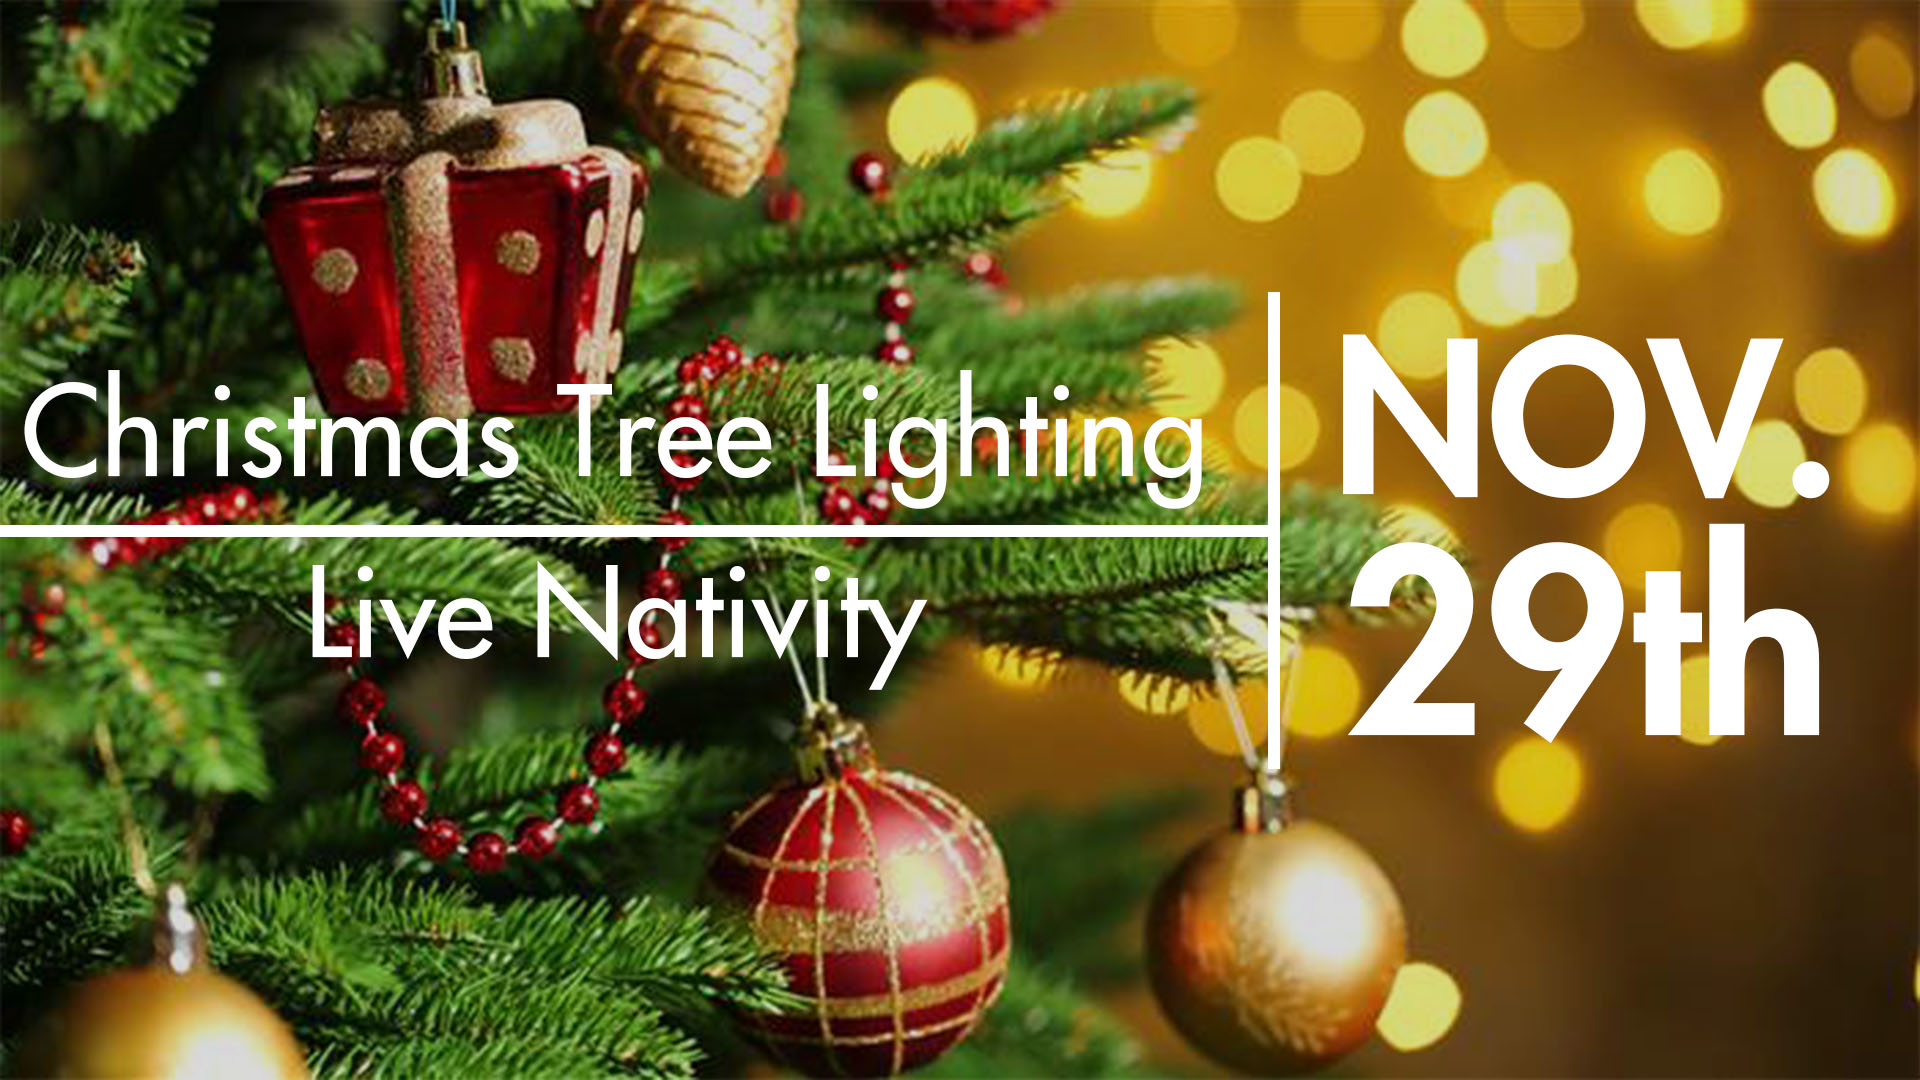 Tree lighting live natavity 2018